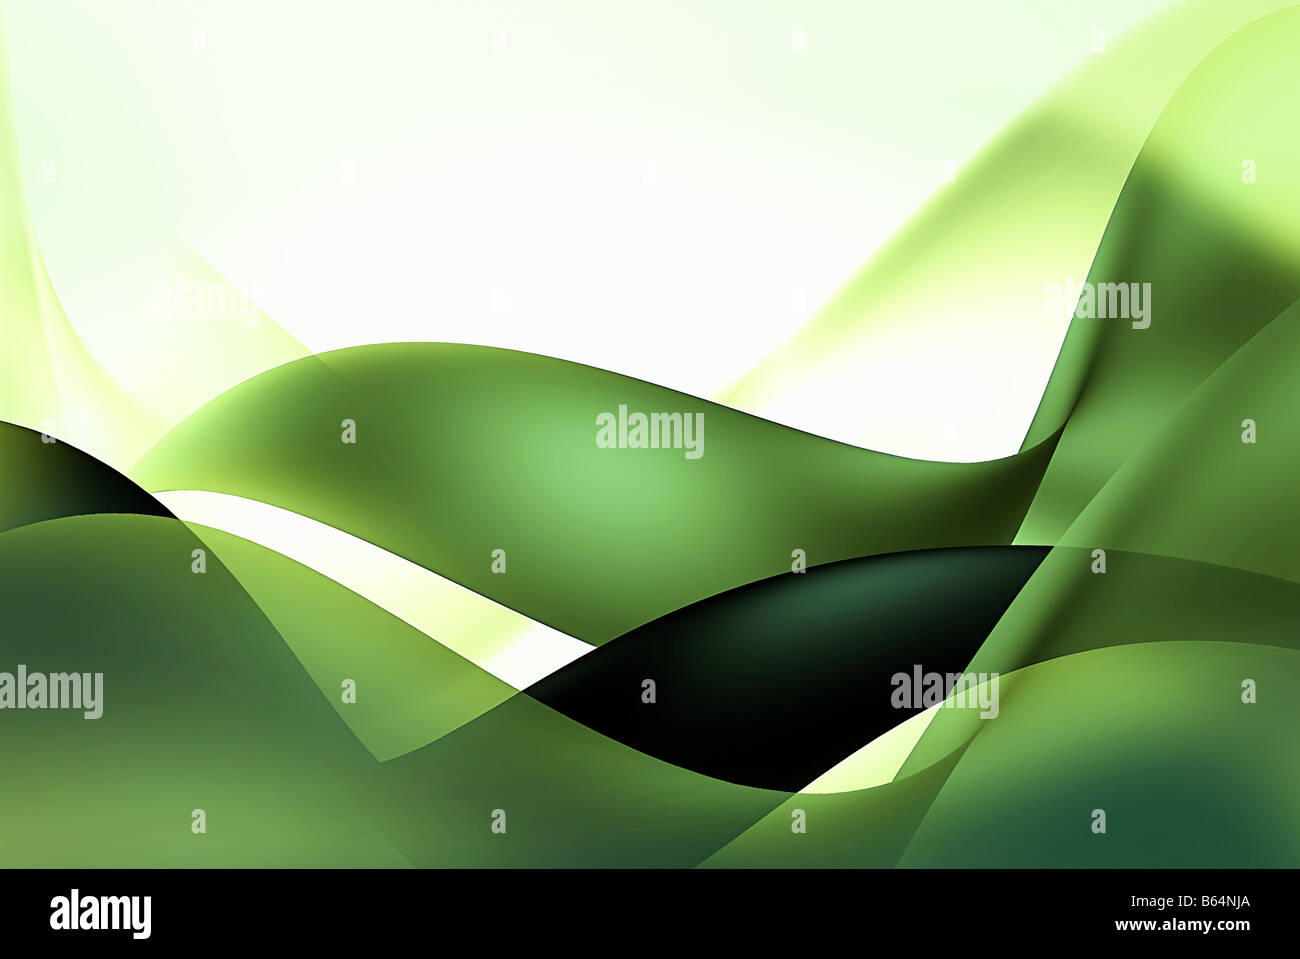 Abstract background with green and white lines - Stock Image